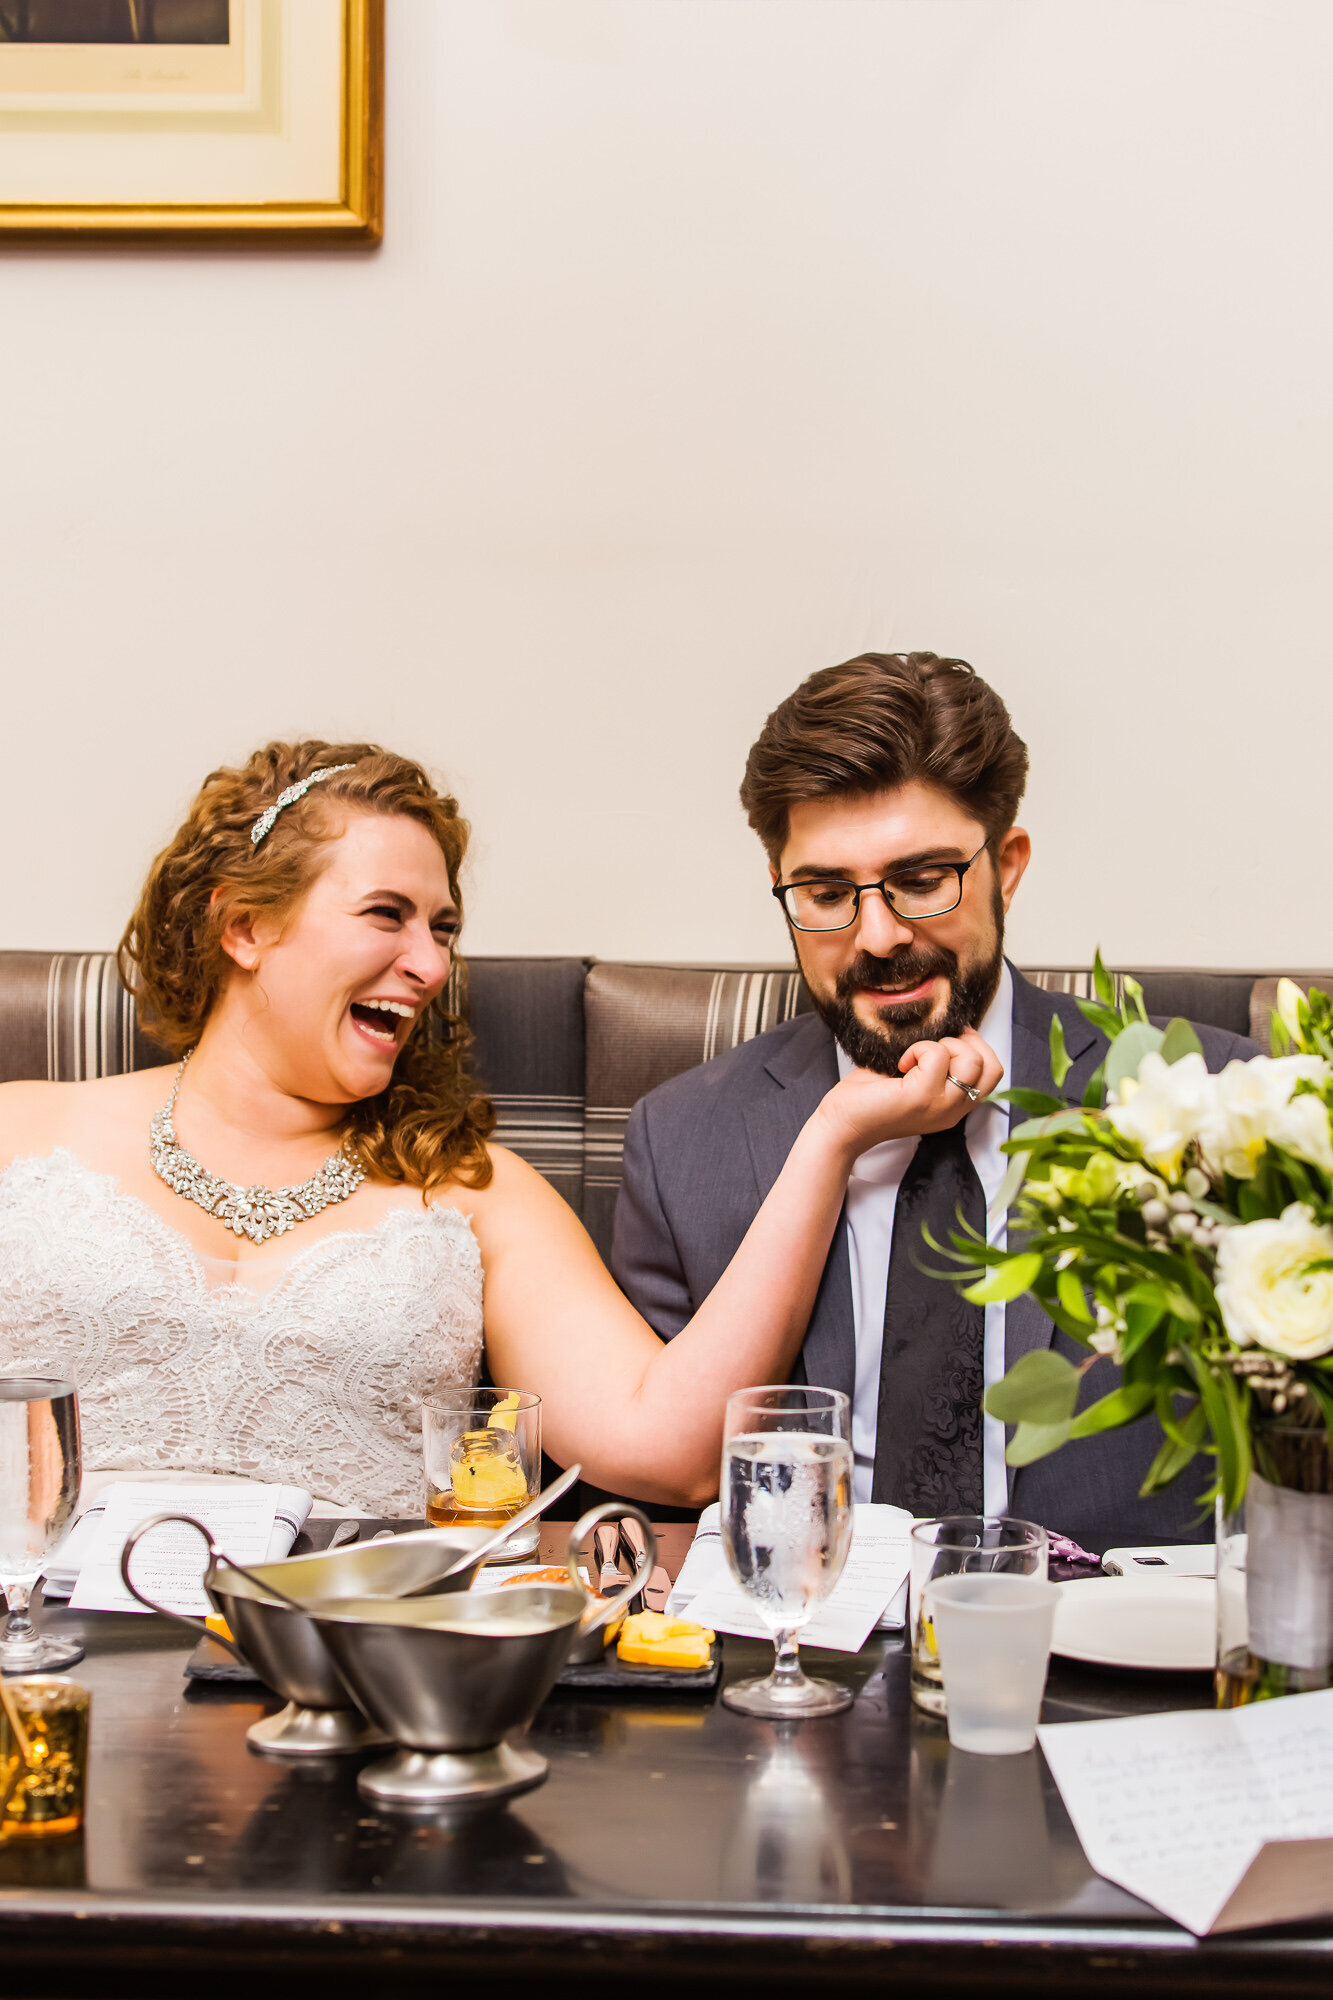 Candid wedding photo of bride and groom at their nontraditional wedding in St. Louis